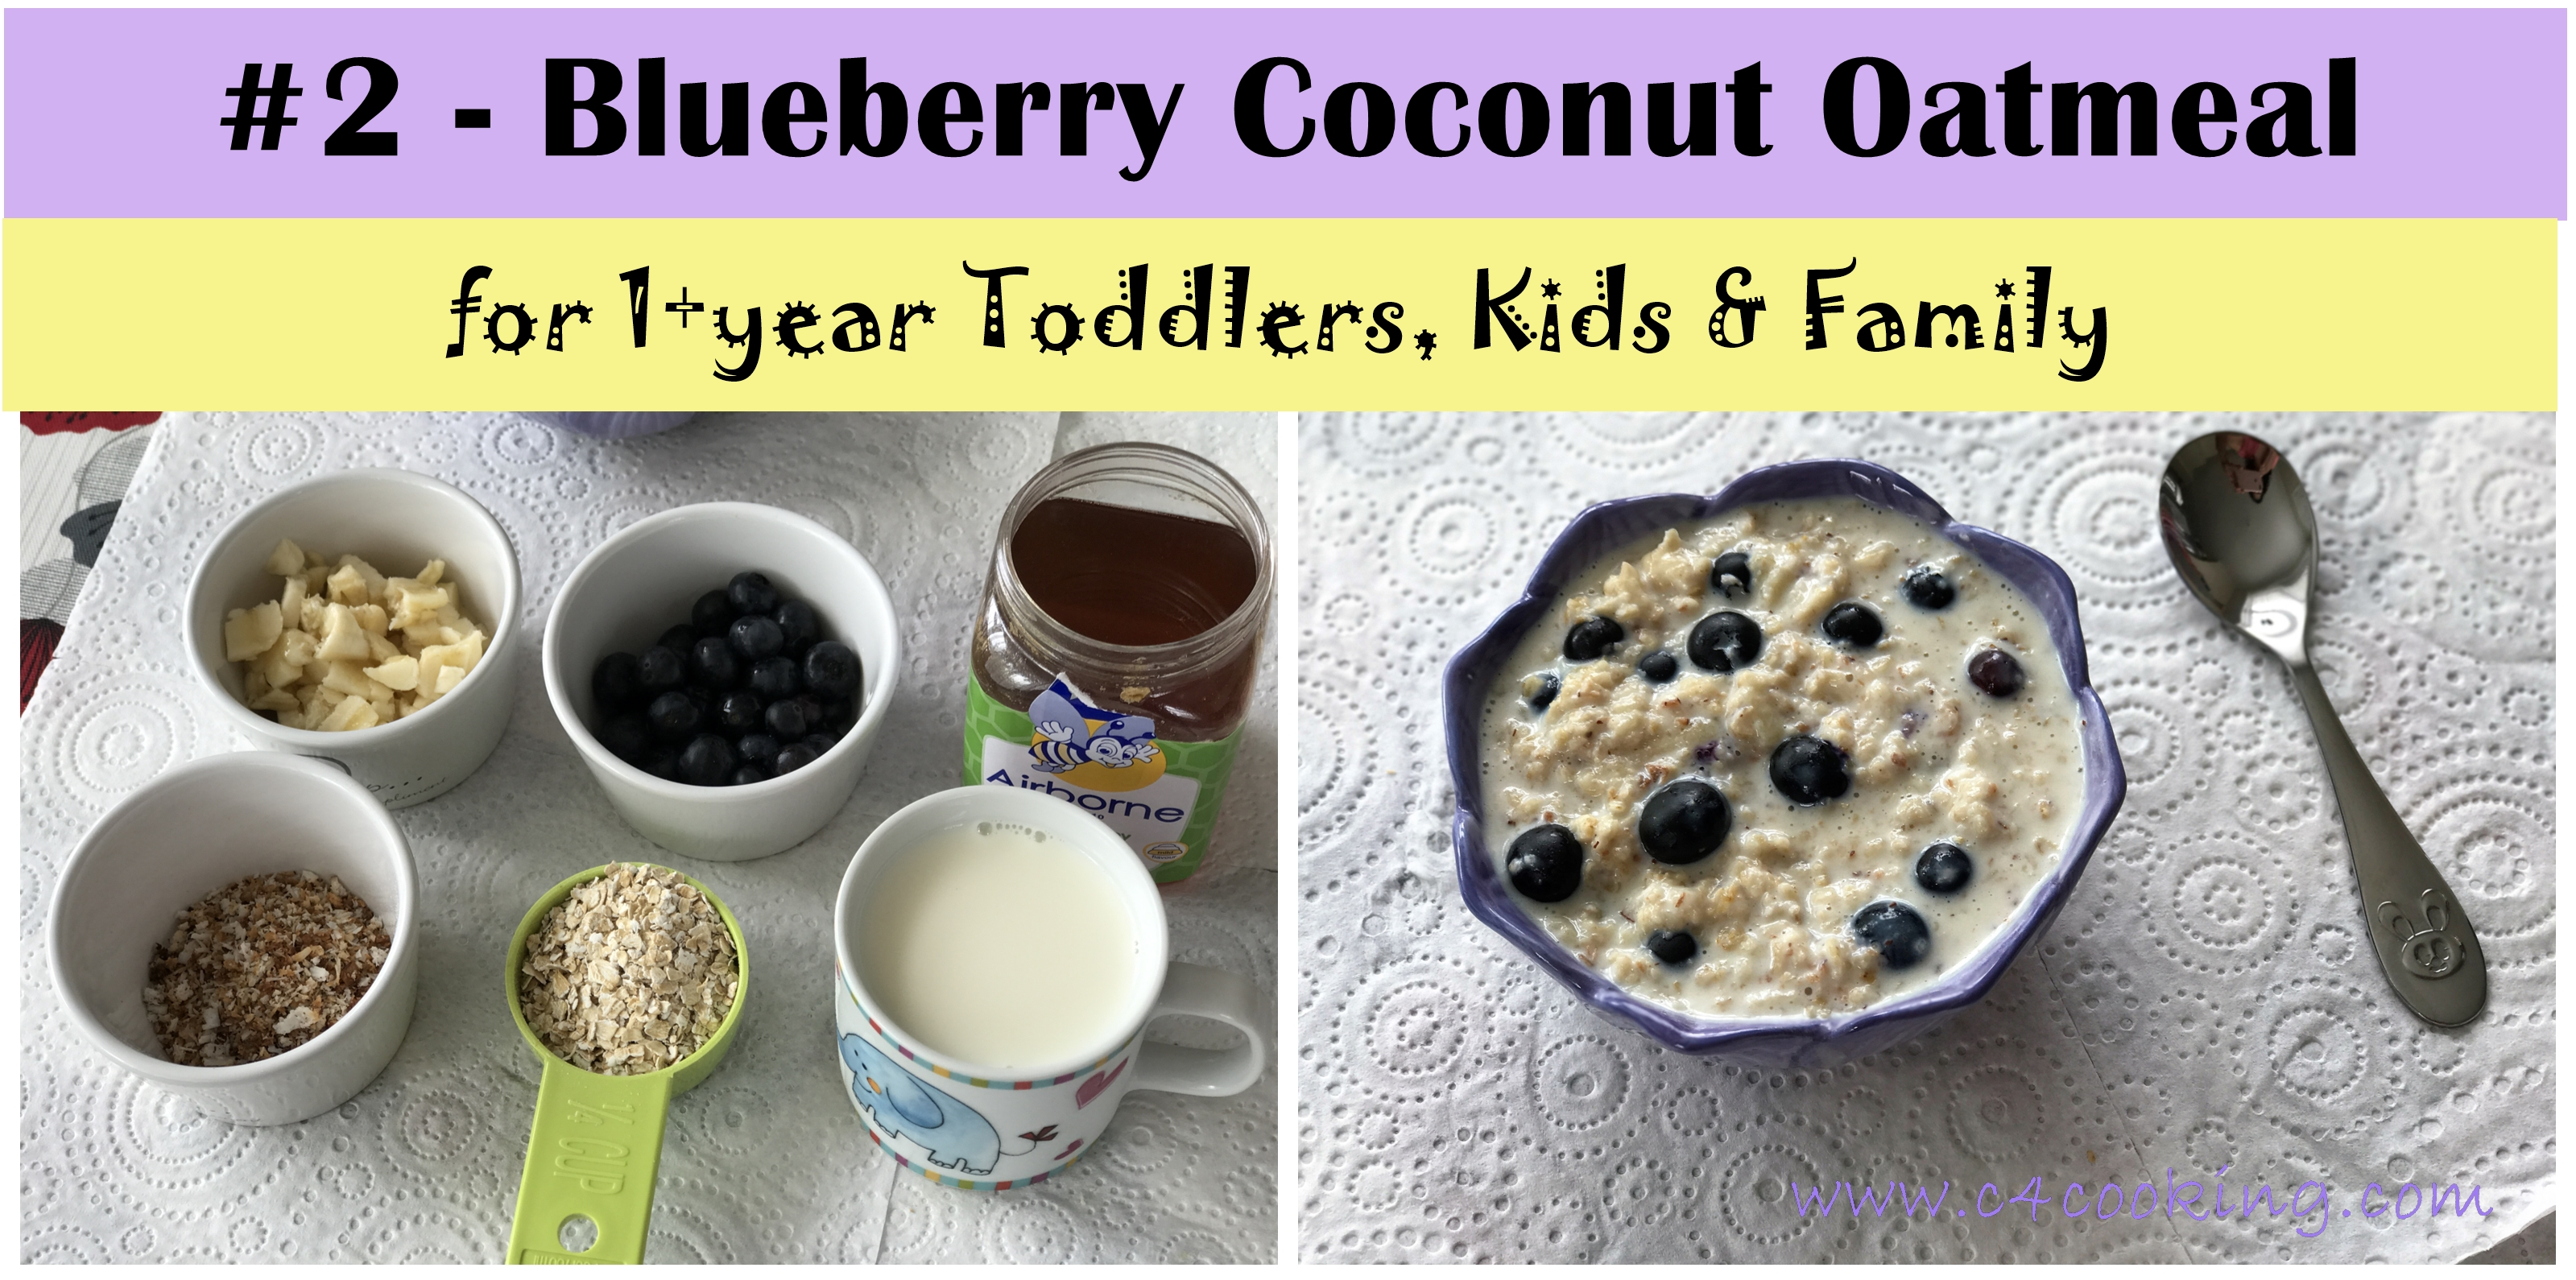 blueberry coconut oatmeal, blueberry banana oatmeal, 1 year toddler oatmeal recipes,